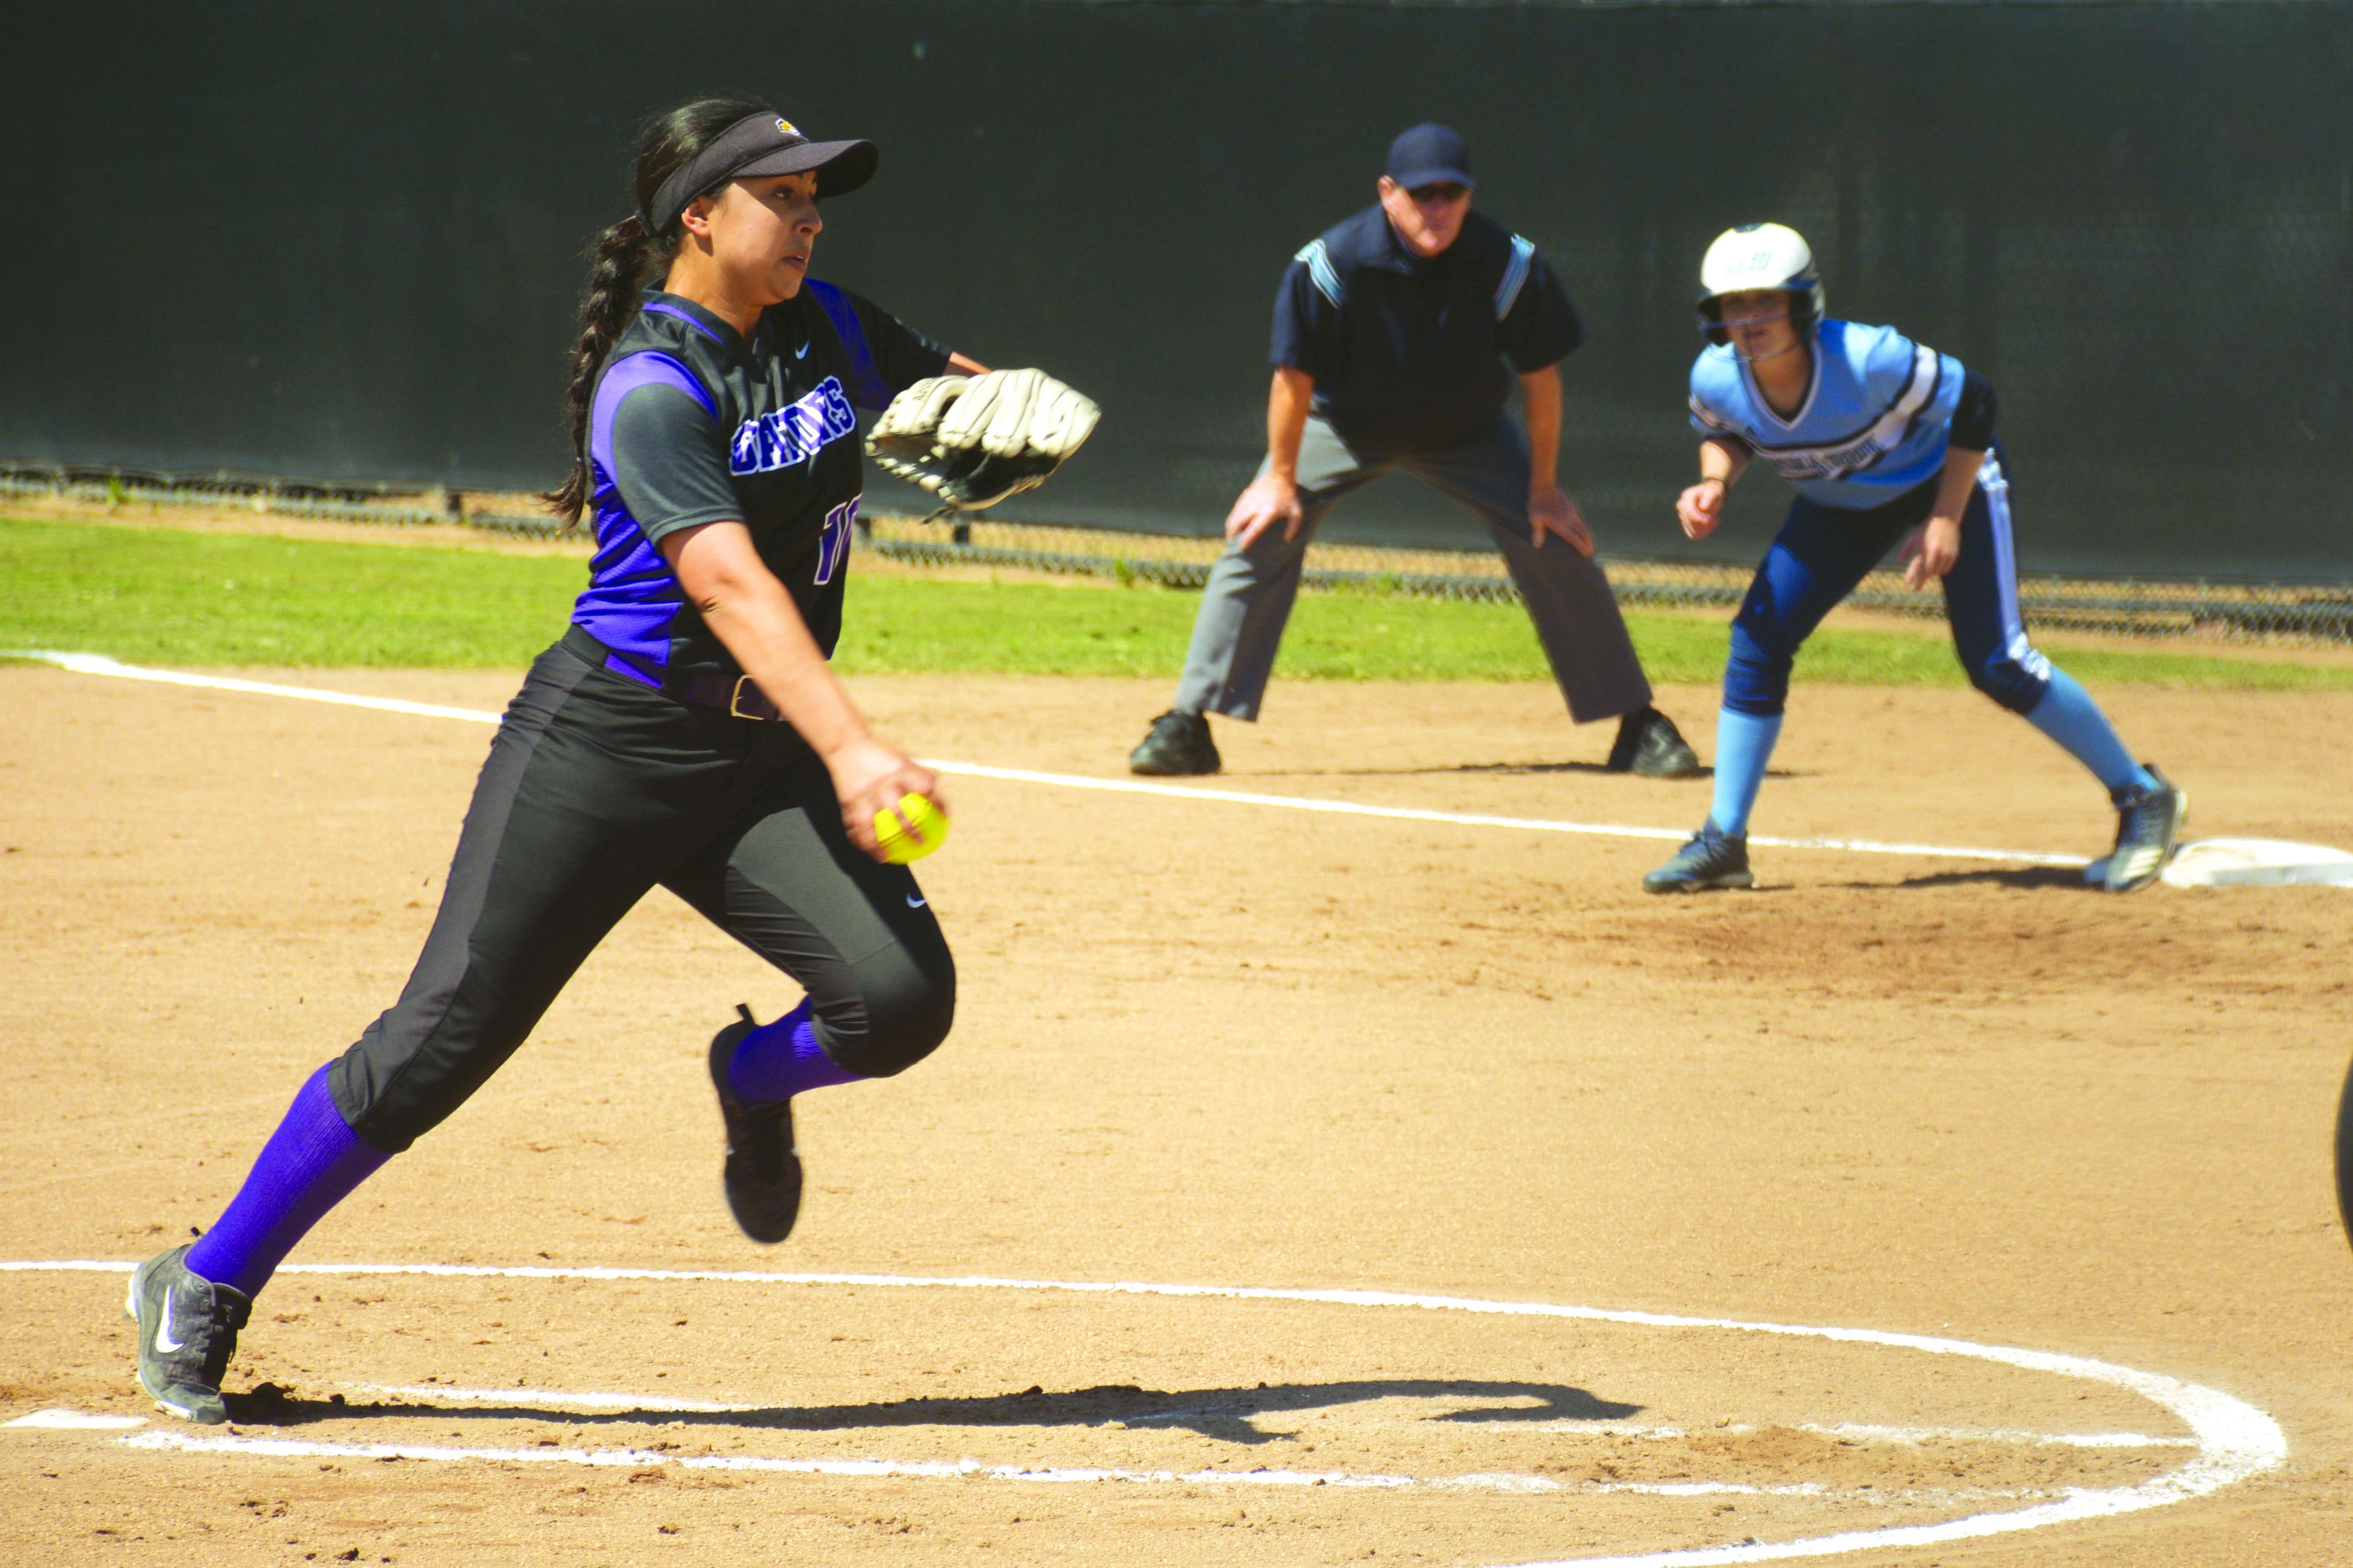 The Gators play the Sonoma State Seawolves in a doubleheader on Tuesday, April 9. (TRISTEN ROWEAN/ Golden Gate Xpress)